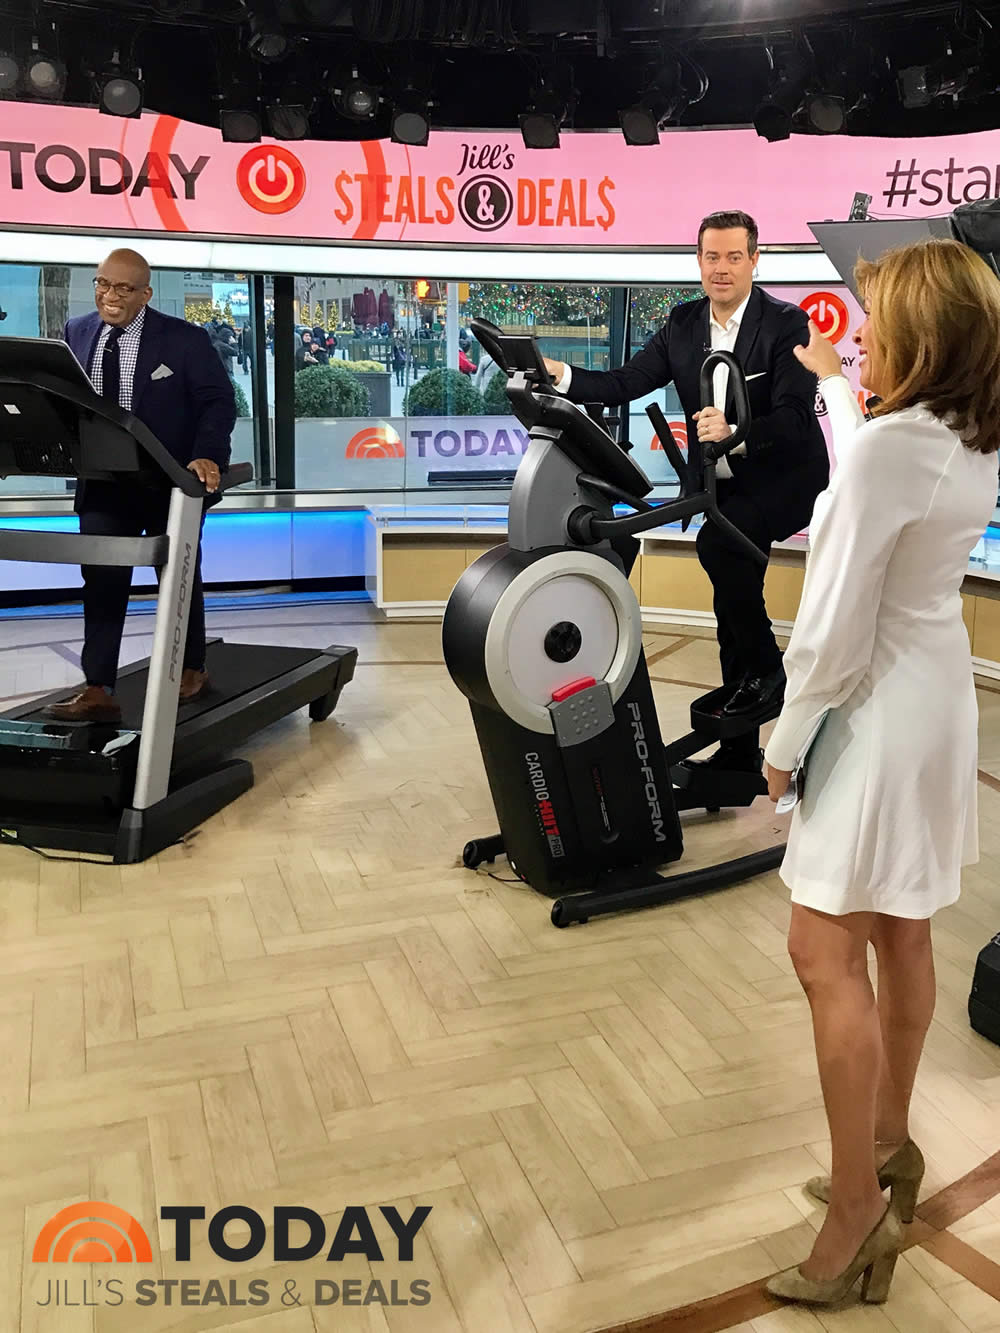 CARSON DALY HITS UP THE  PROFORM HIIT TRAINER PRO  AS HODA KOTB COACHES ON THE TODAY SHOW. MEANWHILE AL ROKER TRIES OUT THE  PROFORM 2000 TREADMILL  ON JILL'S STEALS AND DEALS